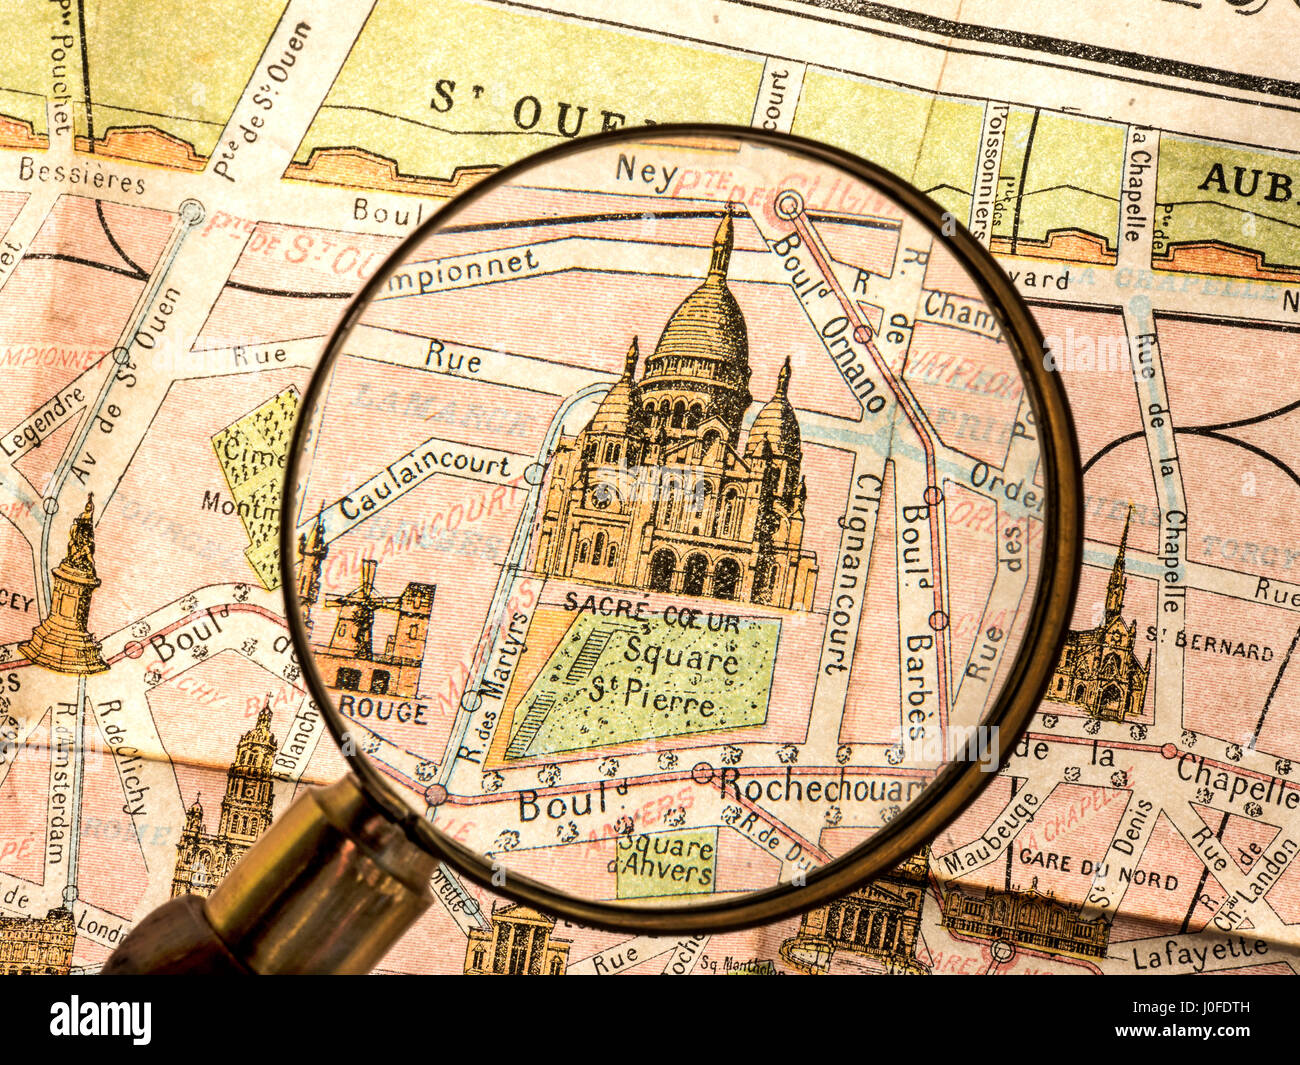 Magnifying Glass on detail of vintage retro Monumental Map of 1900's Paris, featuring Sacre Coeur Basilica Montmartre - Stock Image